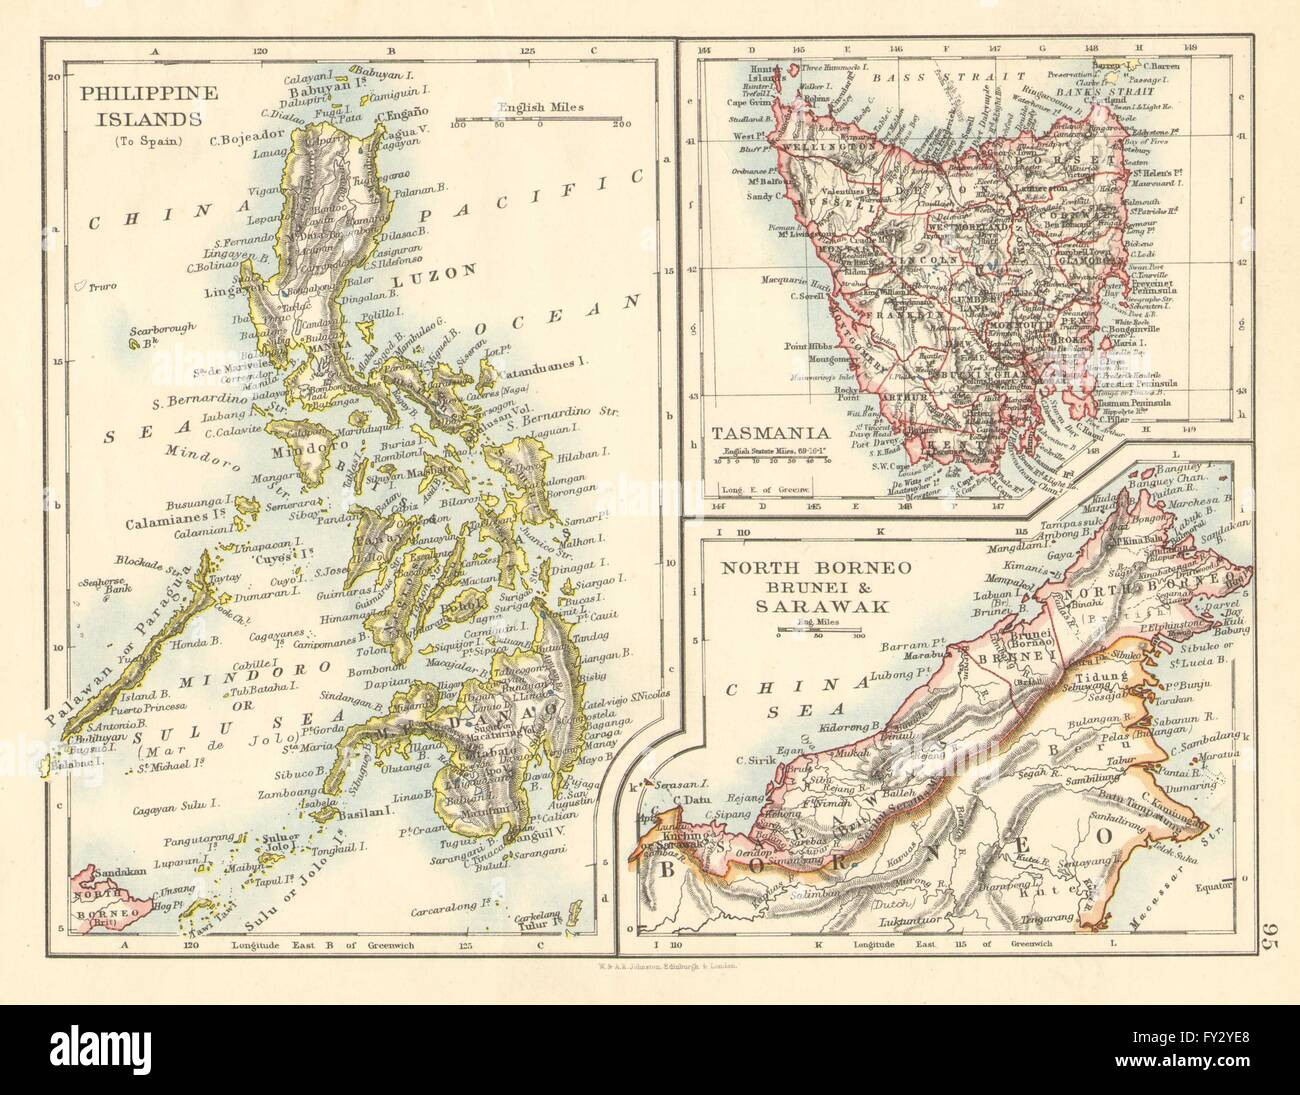 EAST ASIA  Philippines Tasmania North Borneo Brunei Sarawak Stock     Philippines Tasmania North Borneo Brunei Sarawak  JOHNSTON  1899 map